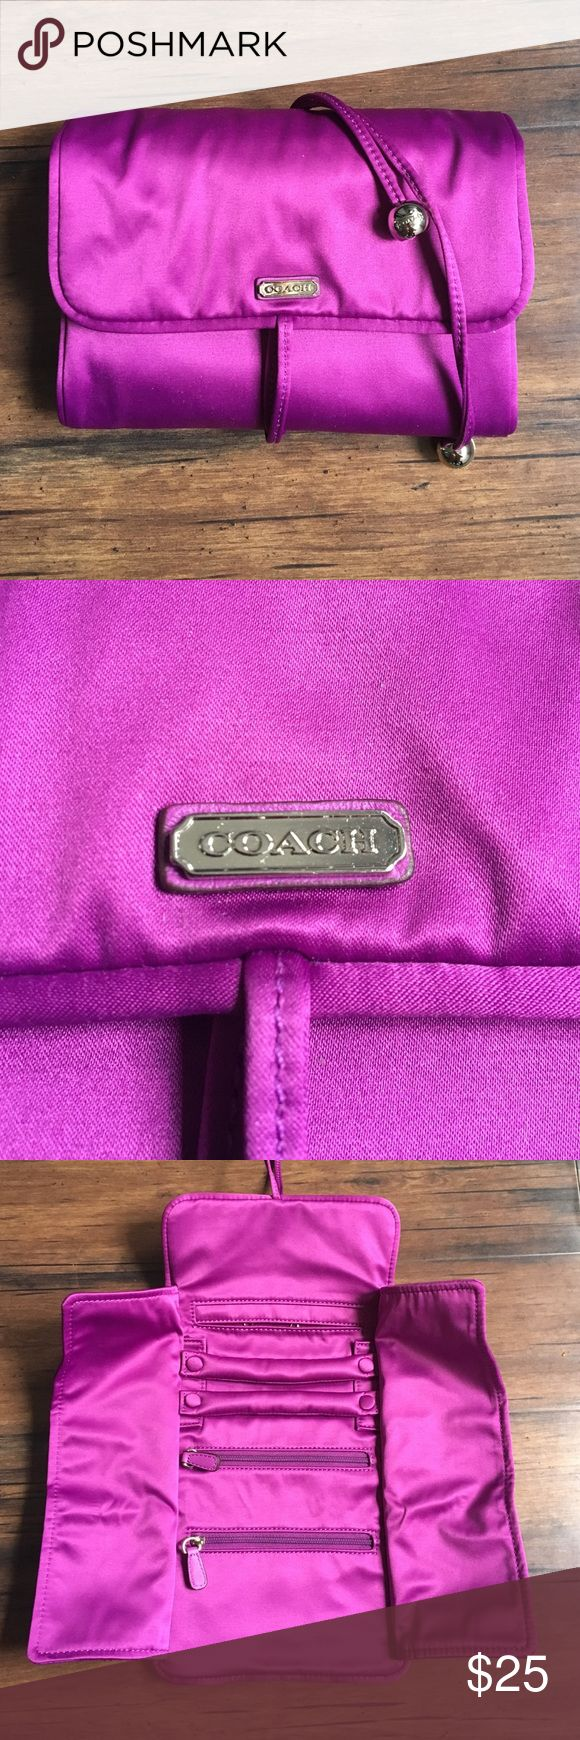 Coach Jewelry Travel/Organizer Case Coach Jewelry Travel/Organizer Case ✈️ Like new condition. No stains, tears, or thread pulls. Inside contains two zippered compartments, two ring/bracelet holders (removable) and one large pockets with hooks. Ties close. Coach Accessories